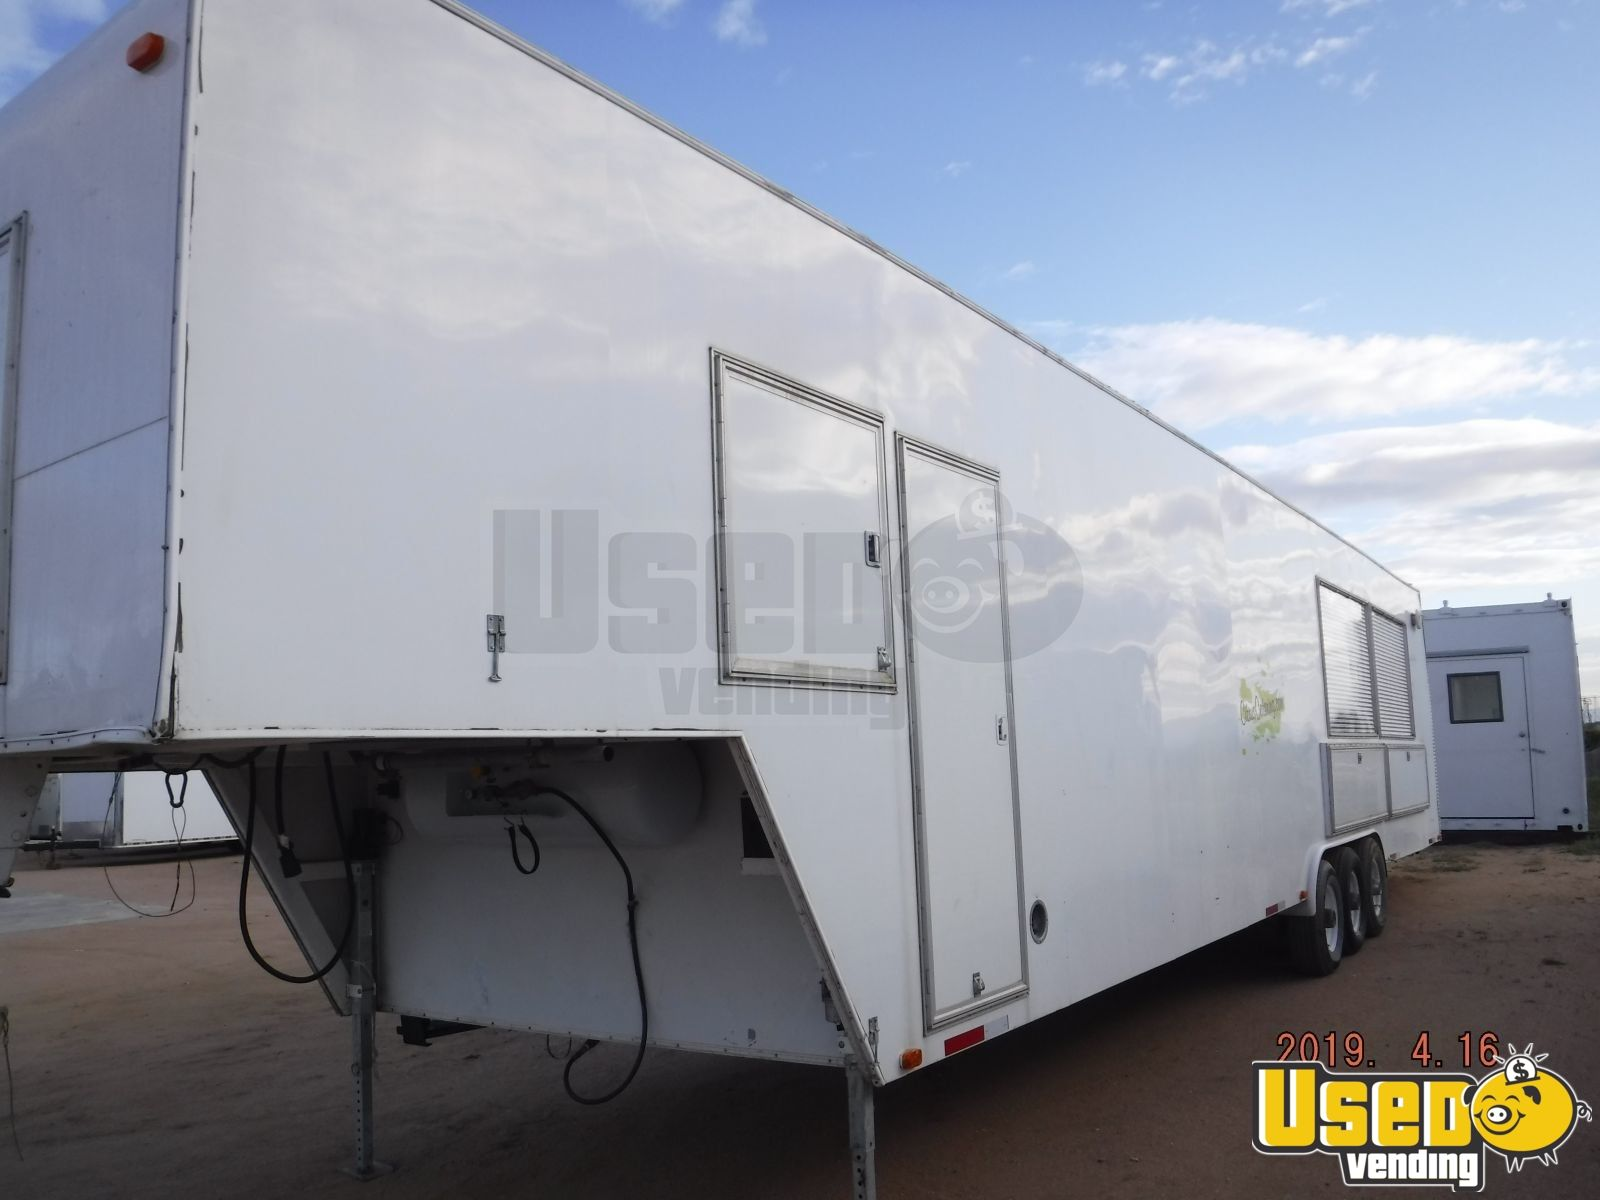 2009 Universal Magnum By California Cart Builder All-purpose Food Trailer Spare Tire Colorado for Sale - 4